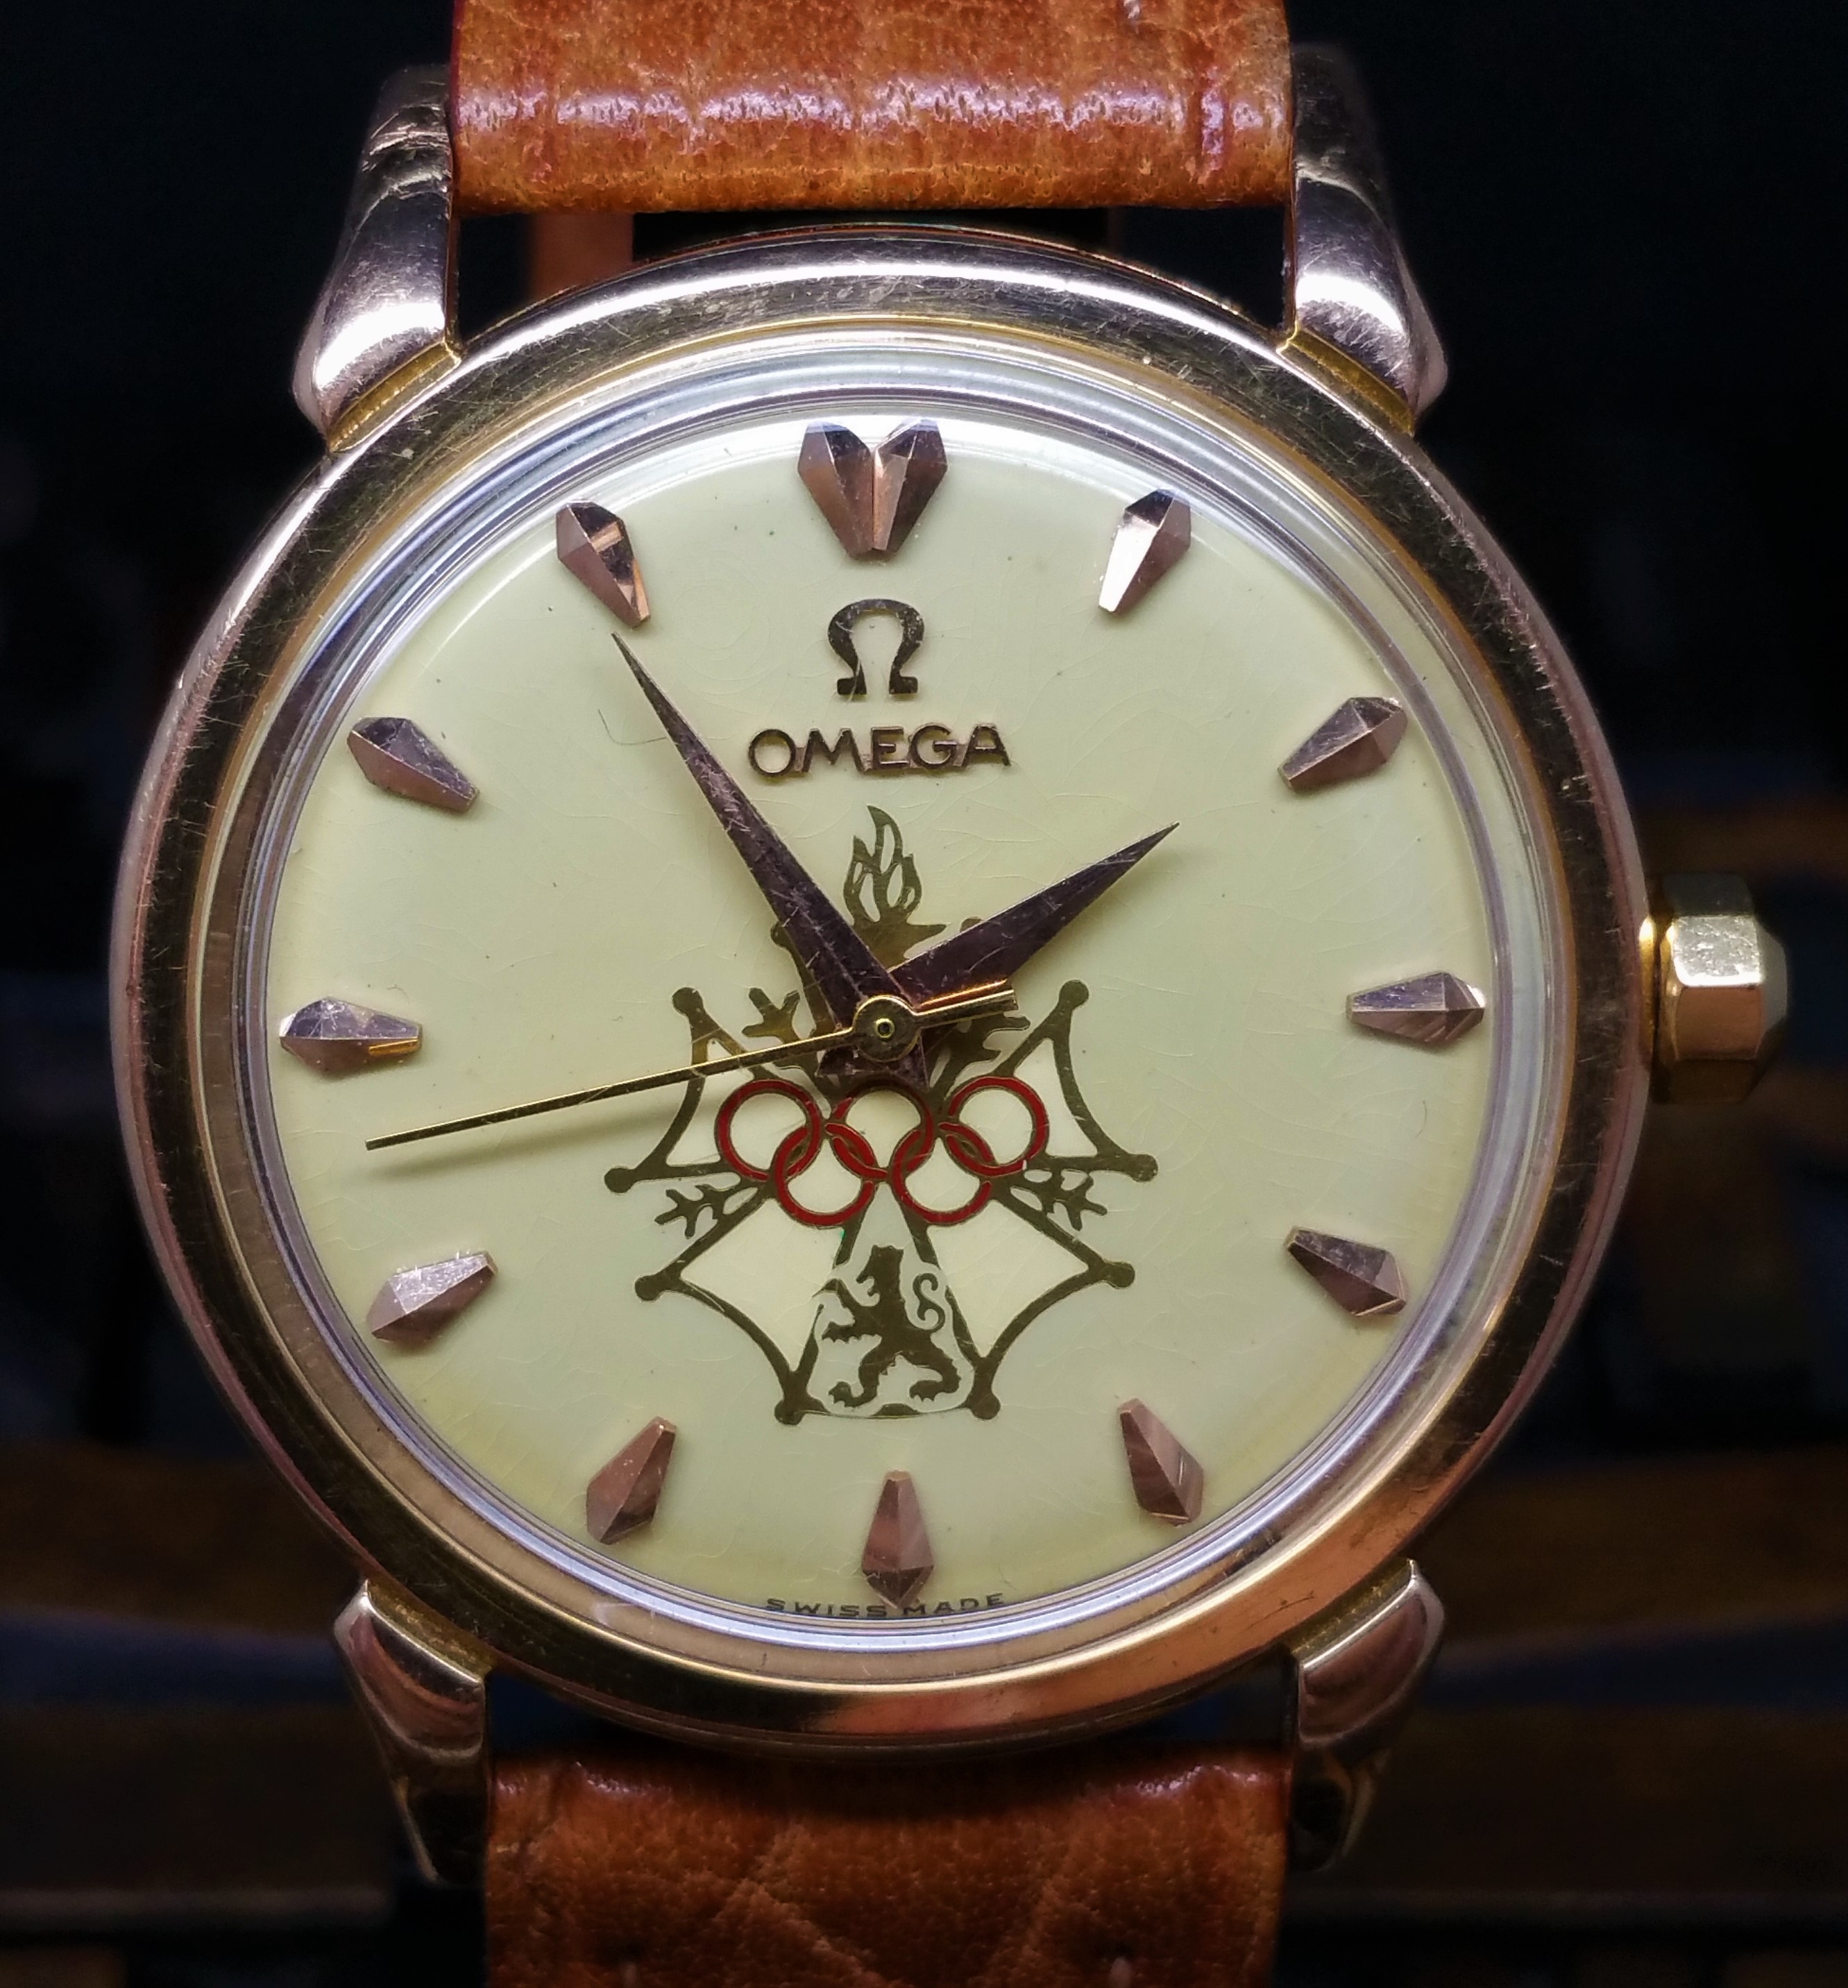 1957 Omega Seamaster 2850 SC Rose Gold XVI Olympic Games Melbourne 1956 Enamel Dial with Box and Papers